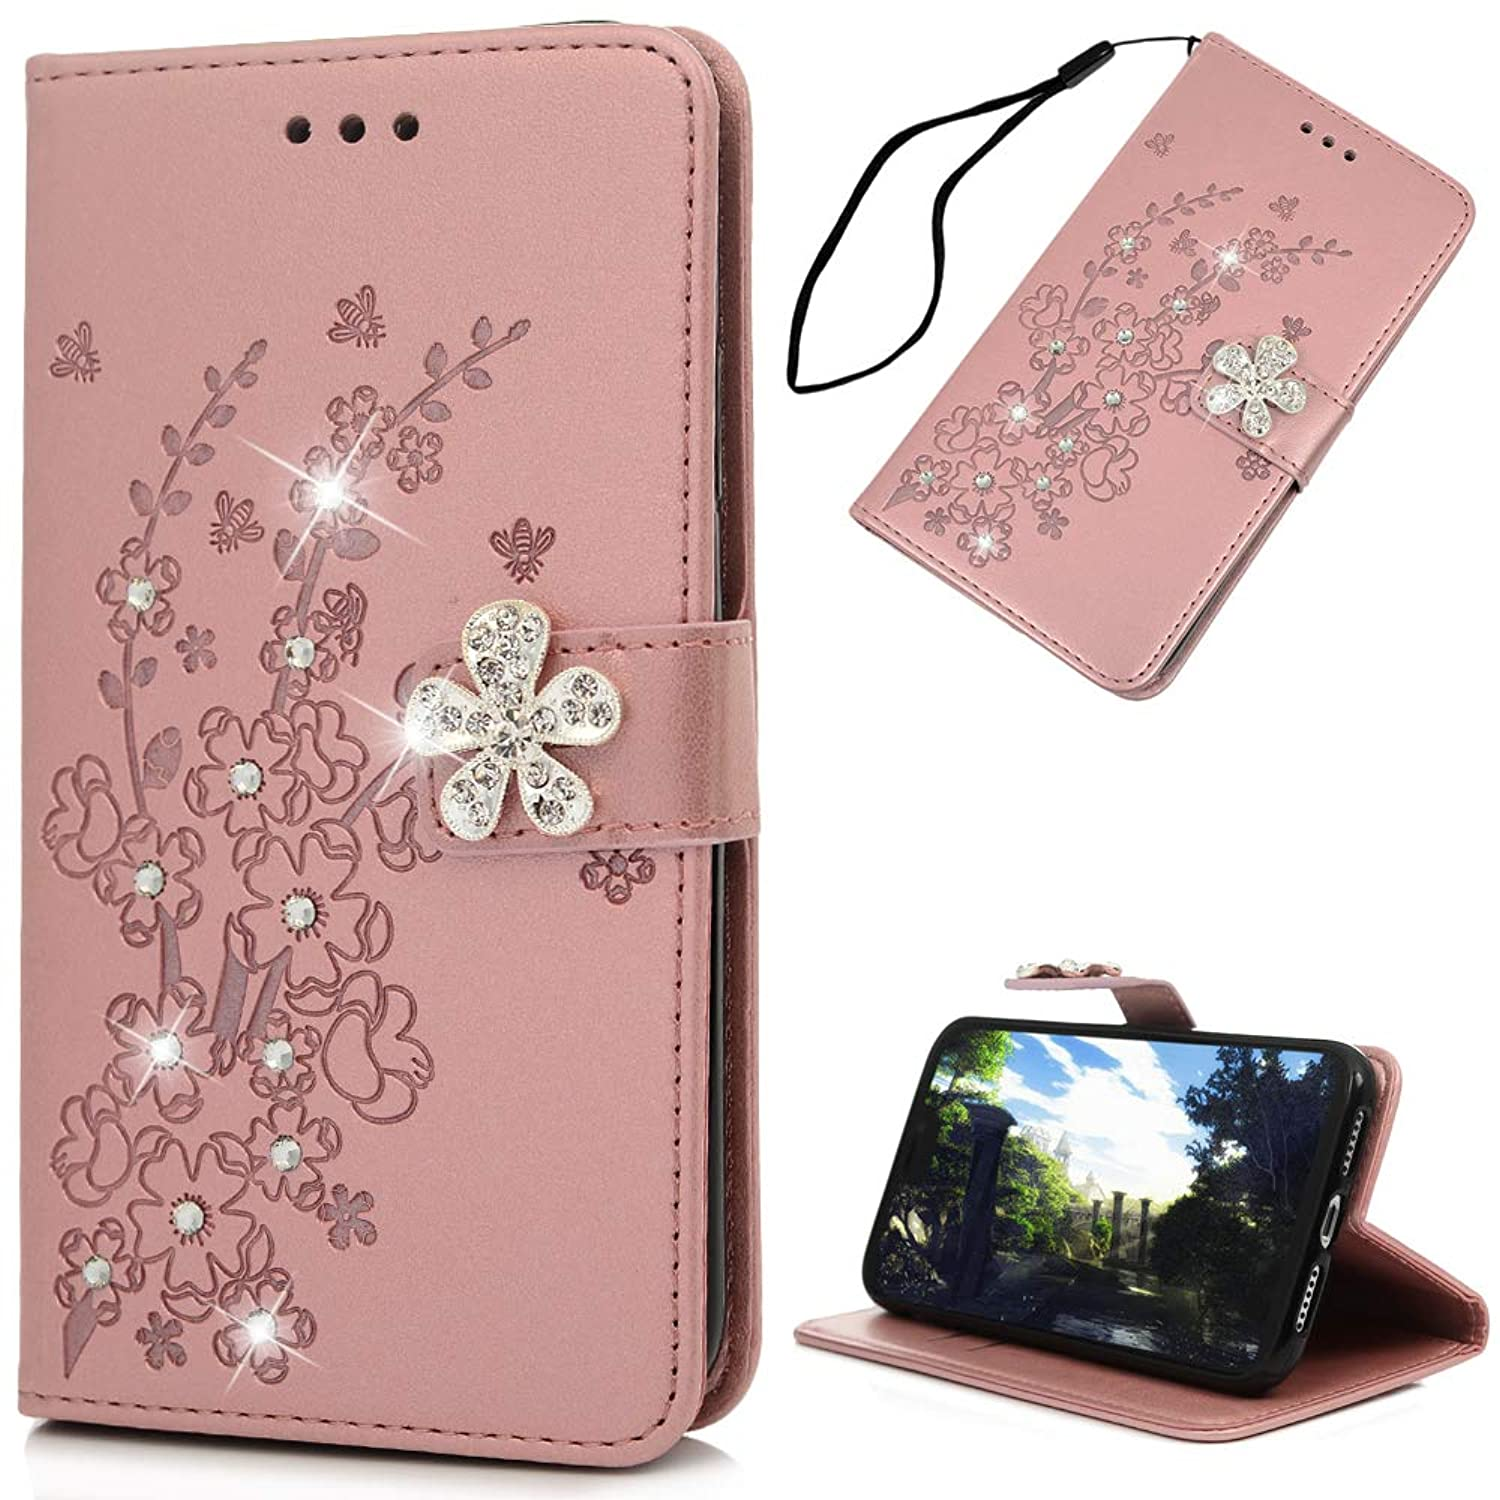 iPhone Xs Max Case, Mavis's Diary Embossed Plum Flowers Wallet 3D Handmade Bling Butterfly Crystal Diamond PU Leather Shockproof Protective Cover for iPhone Xs Max 2018 - Pink